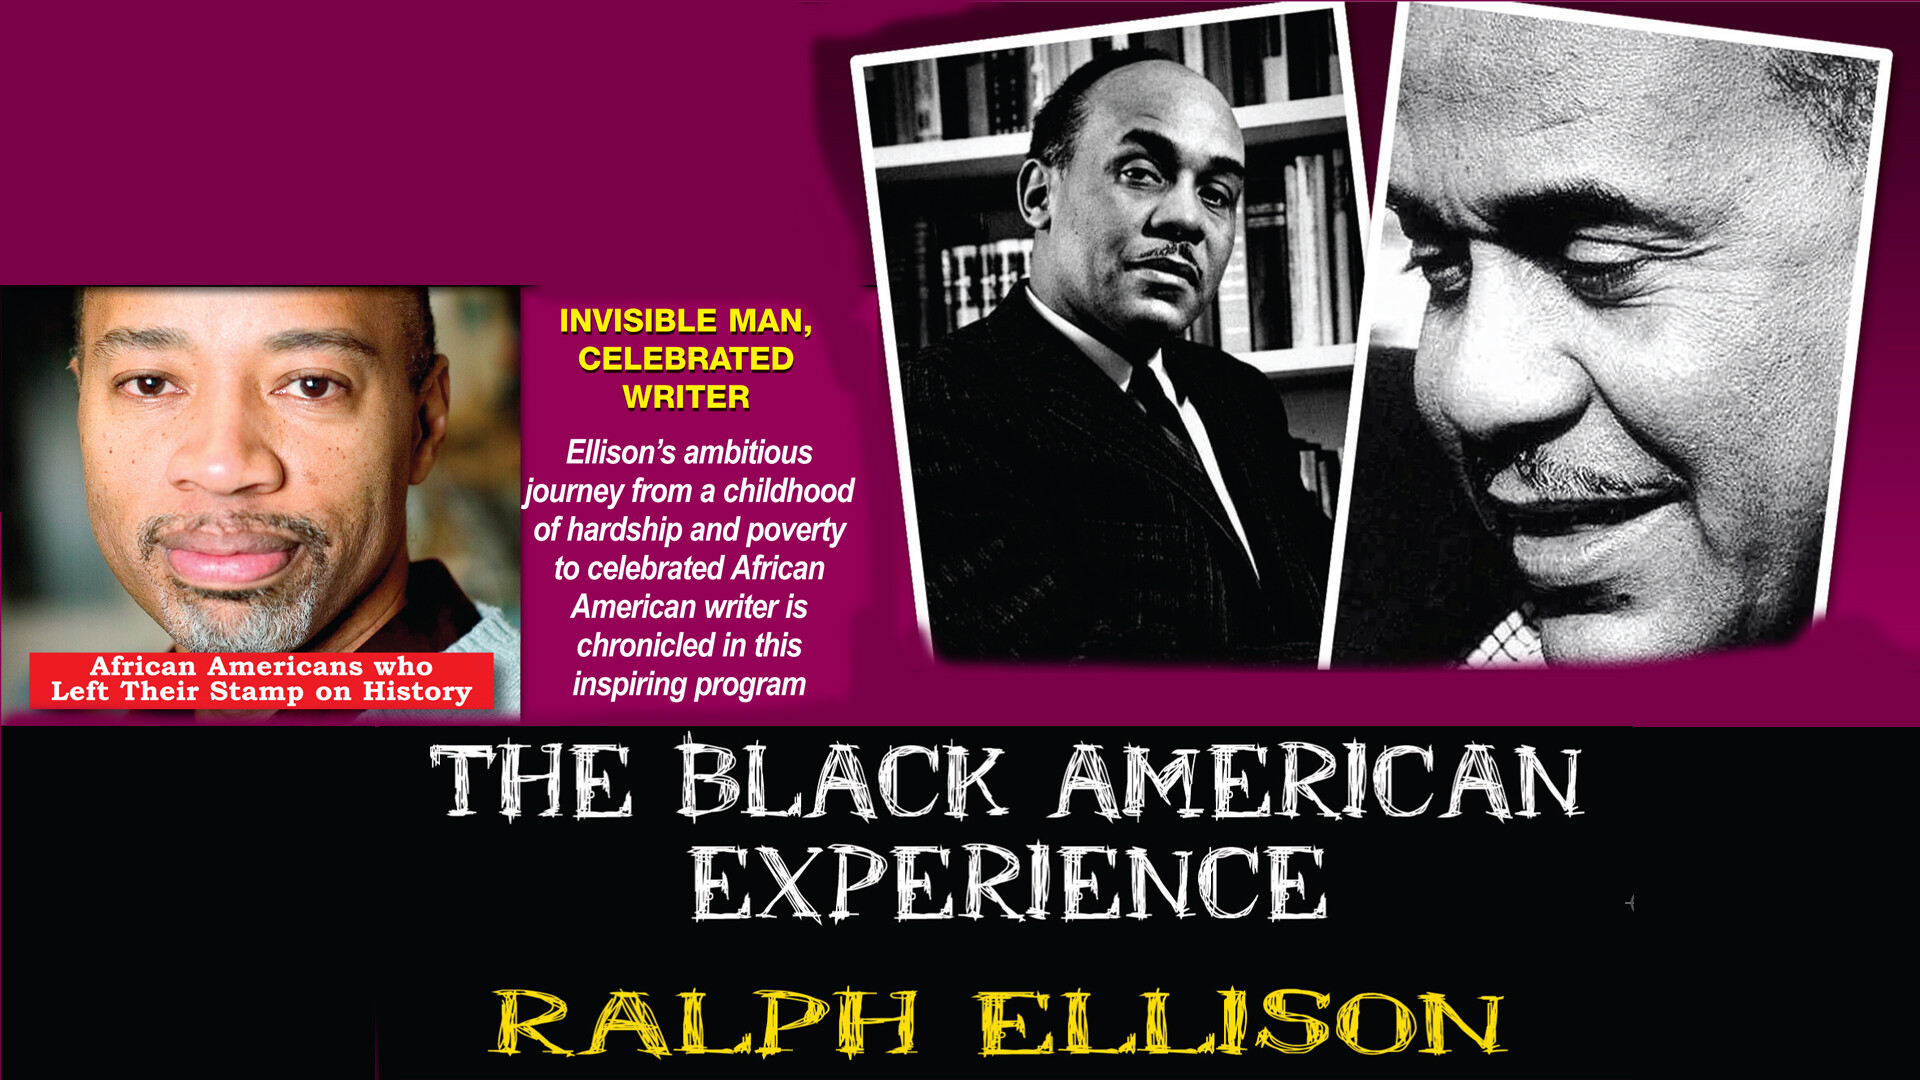 L5735 - Ralph Ellison Invisible Man, Celebrated Writer